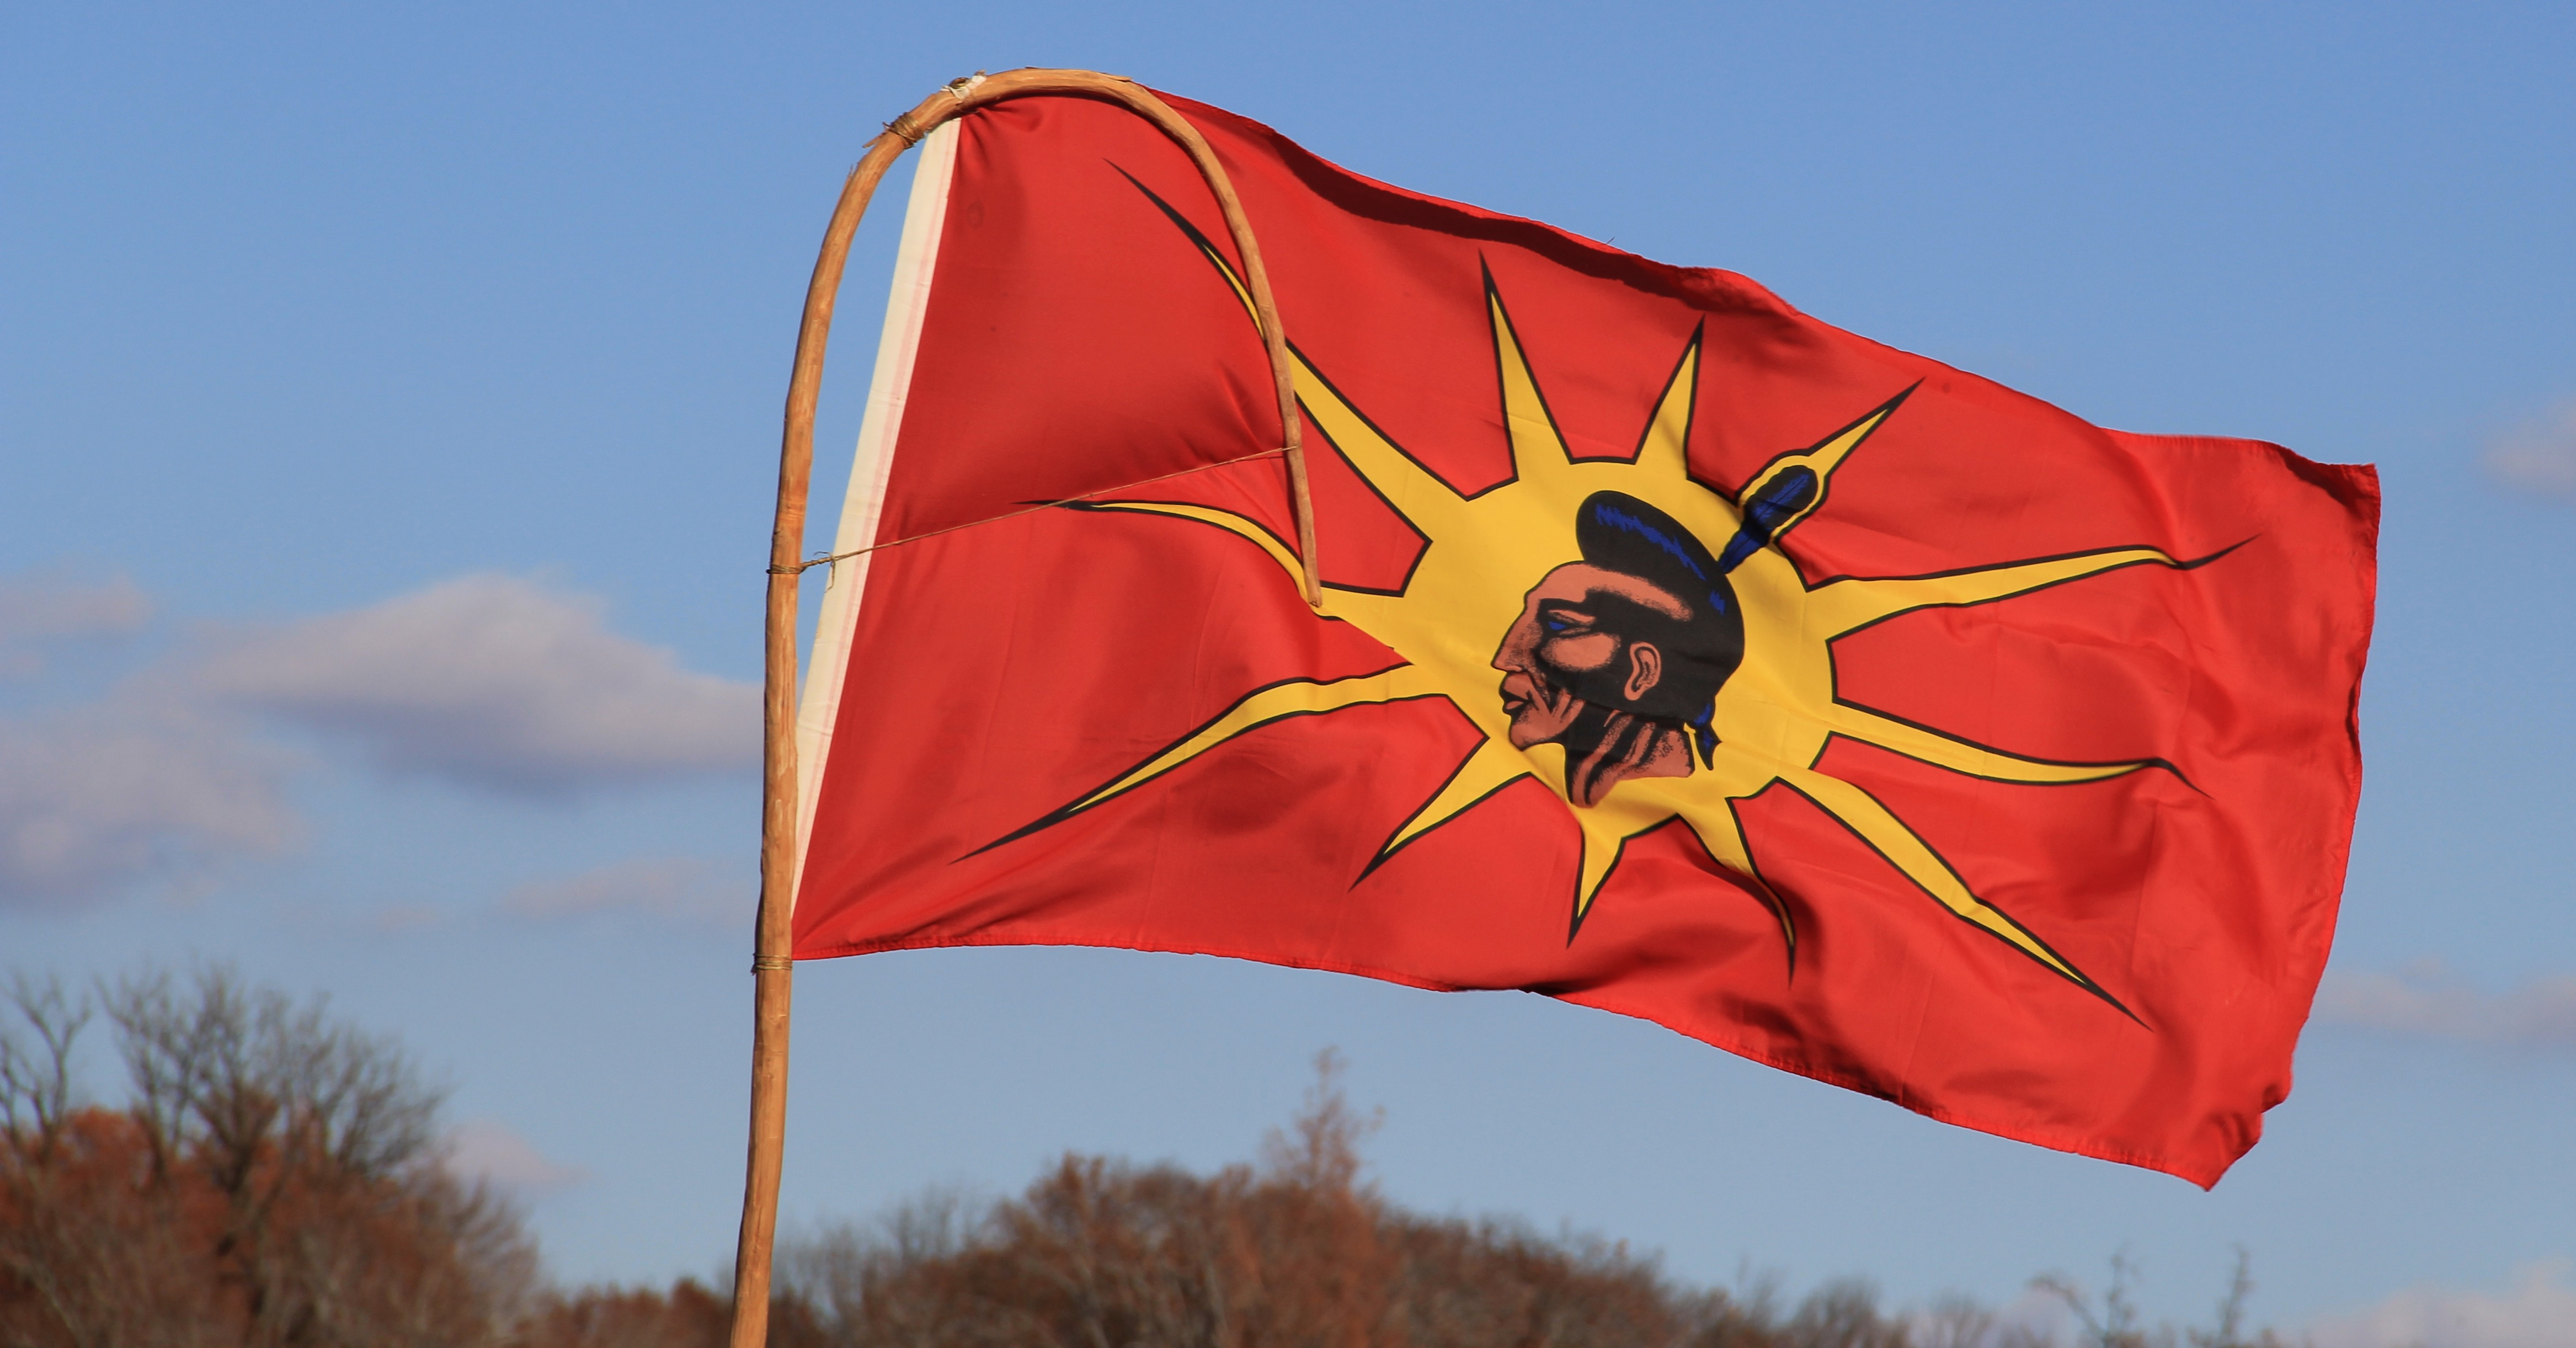 Indian Flag History: File:Native American Flag At Beyond NoDAPL March On